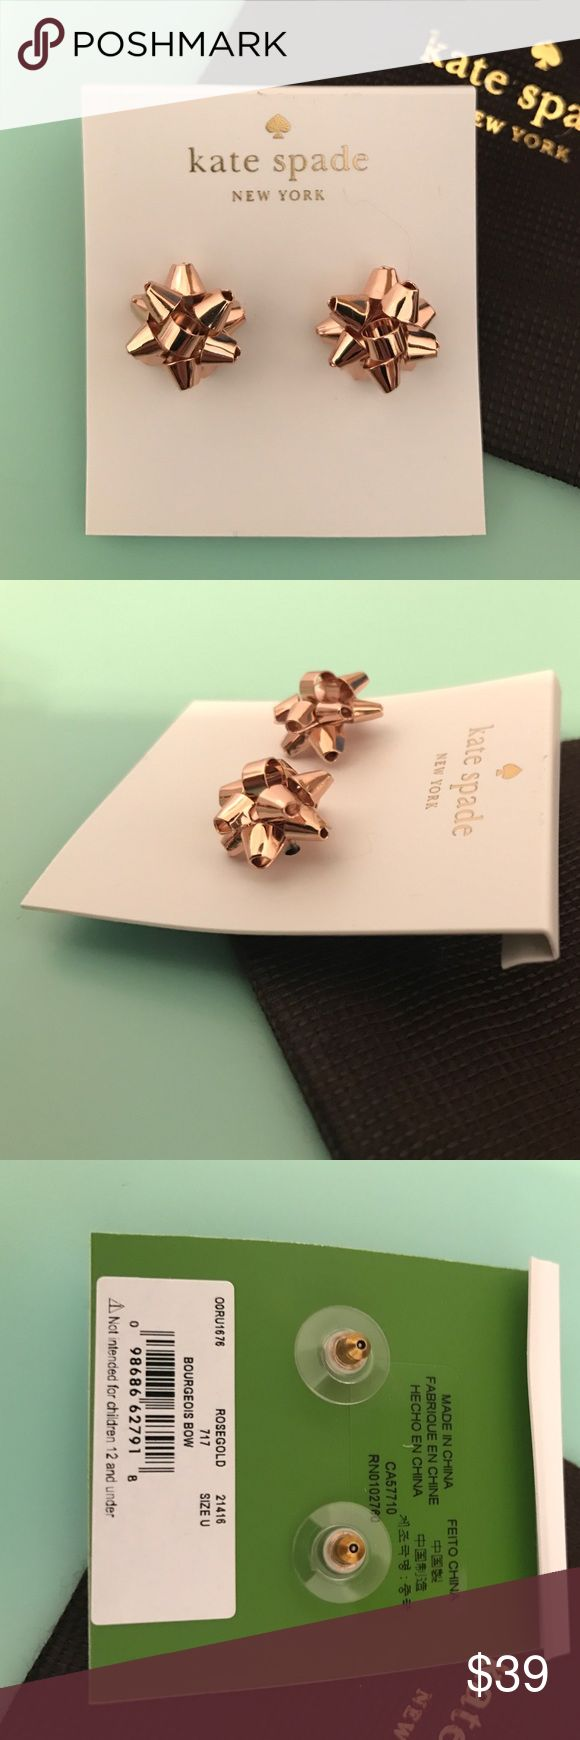 """✨Kate Spade ✨Rose Gold Bourgeois Bow Earrings Lovely NWT ✨Kate Spade ✨ROSEGOLD Bourgeois Bow Earrings. Hard to find """"Bourgeois"""" collection.  Perfect for the holidays! Comes with Kate Spade Jewelry Bag. New with tags. Price firm. kate spade Jewelry Earrings"""